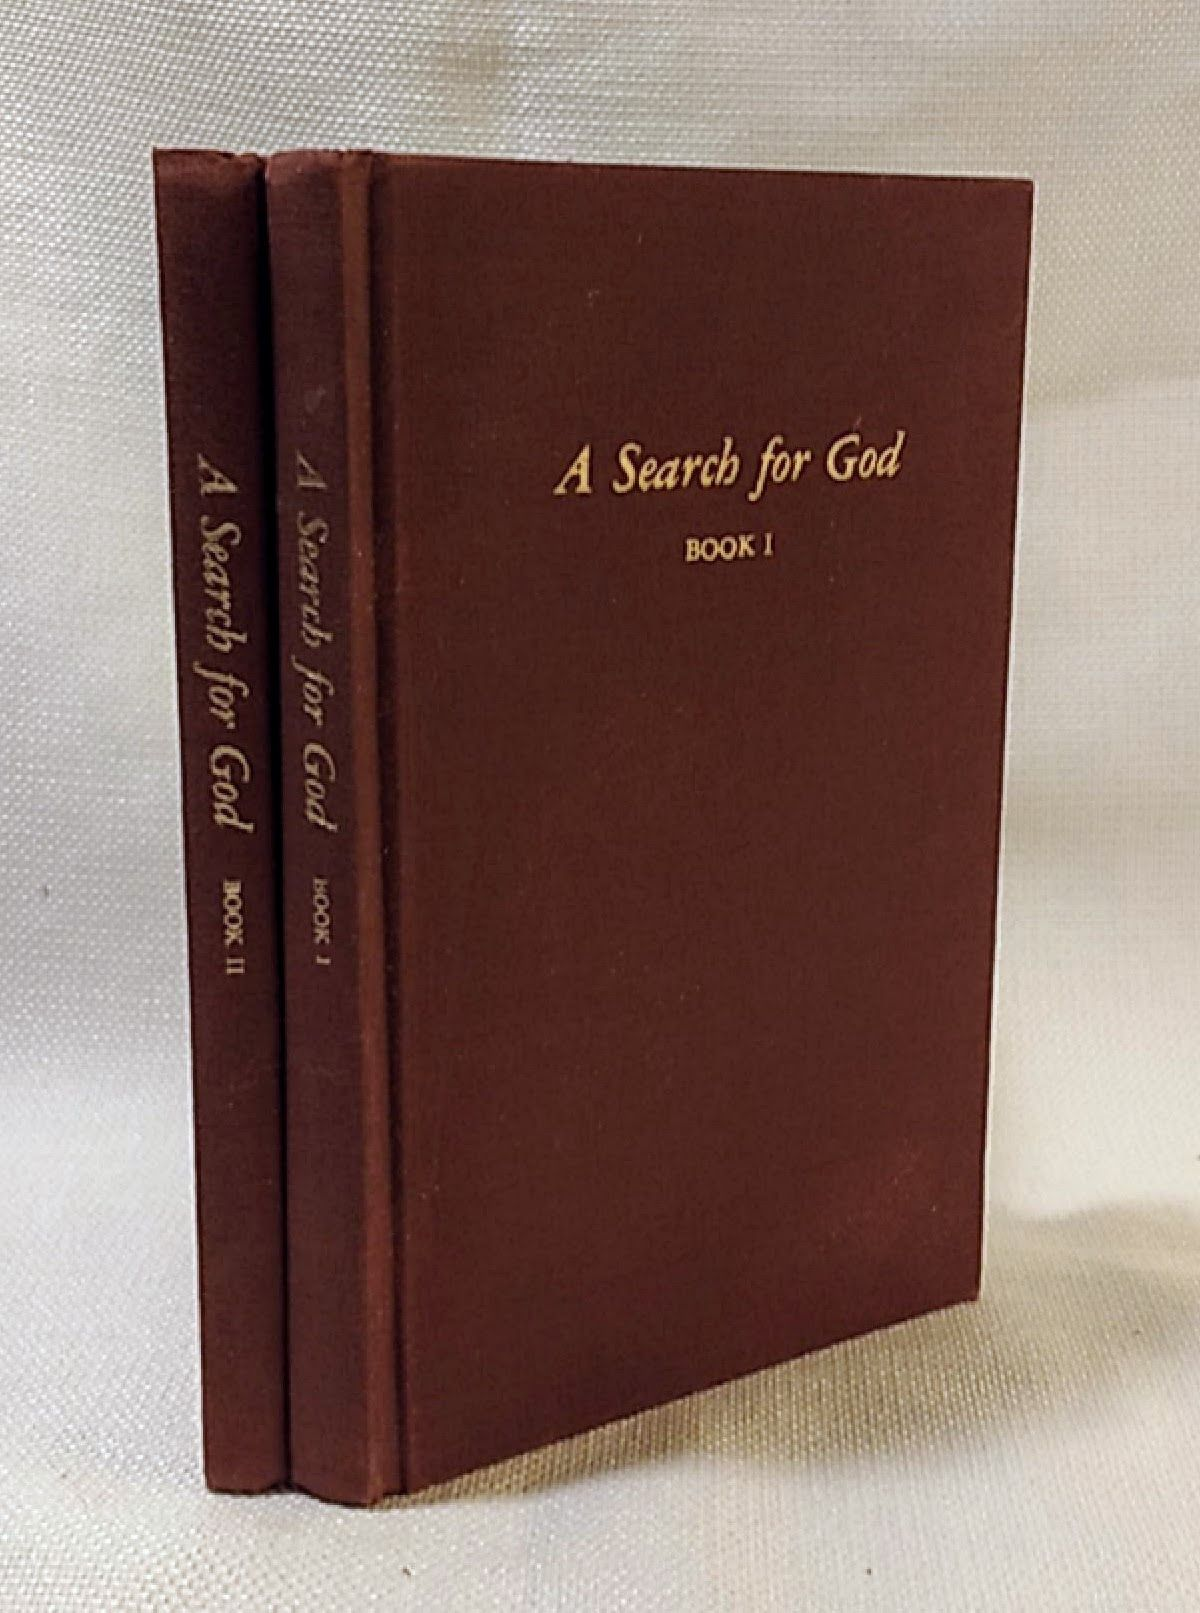 Two Volume Set of Edgar Cayce's A Search for God: Book I & Book II, Association for Research and Enlightenment [Editor]